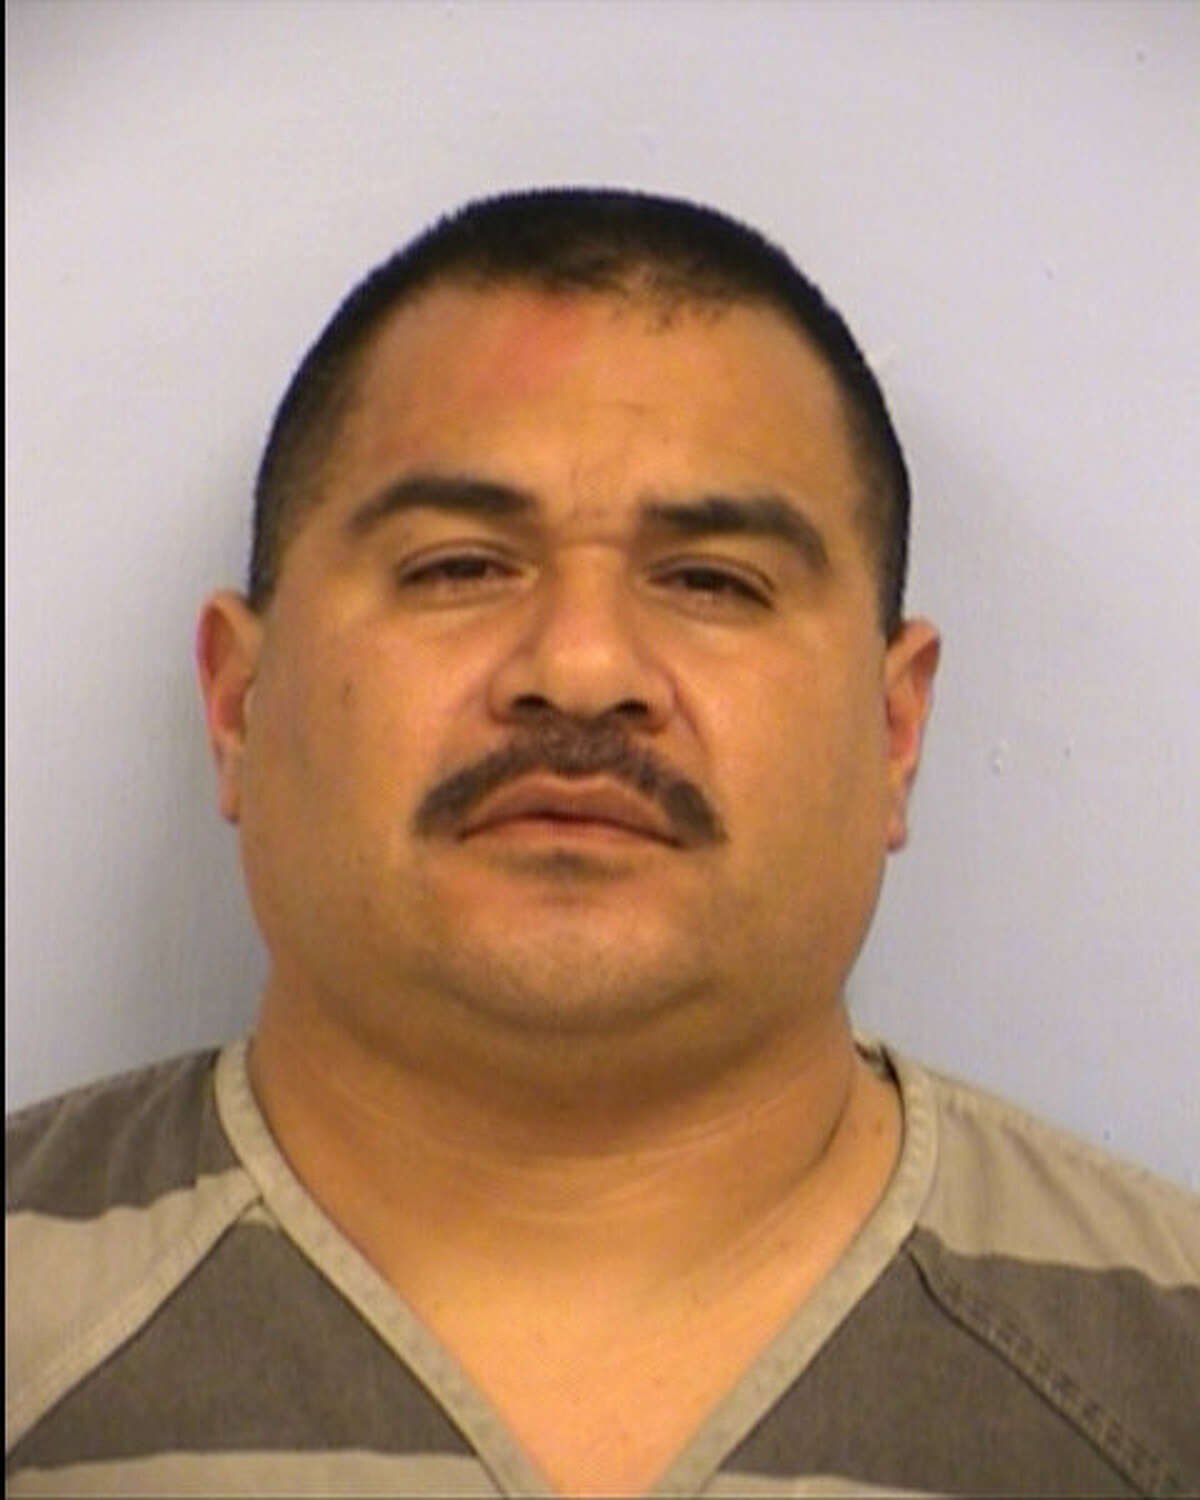 """Austin police arrested Hipolito Hinojosa Jr., a Hidalgo County sheriff's deputy, on a charge of driving while intoxicated on Thursday. Hinojosa has been placed on administrative leave without pay pending an internal investigation, Hidalgo County Sheriff J.E. """"Eddie"""" Guerra said in a Facebook post."""